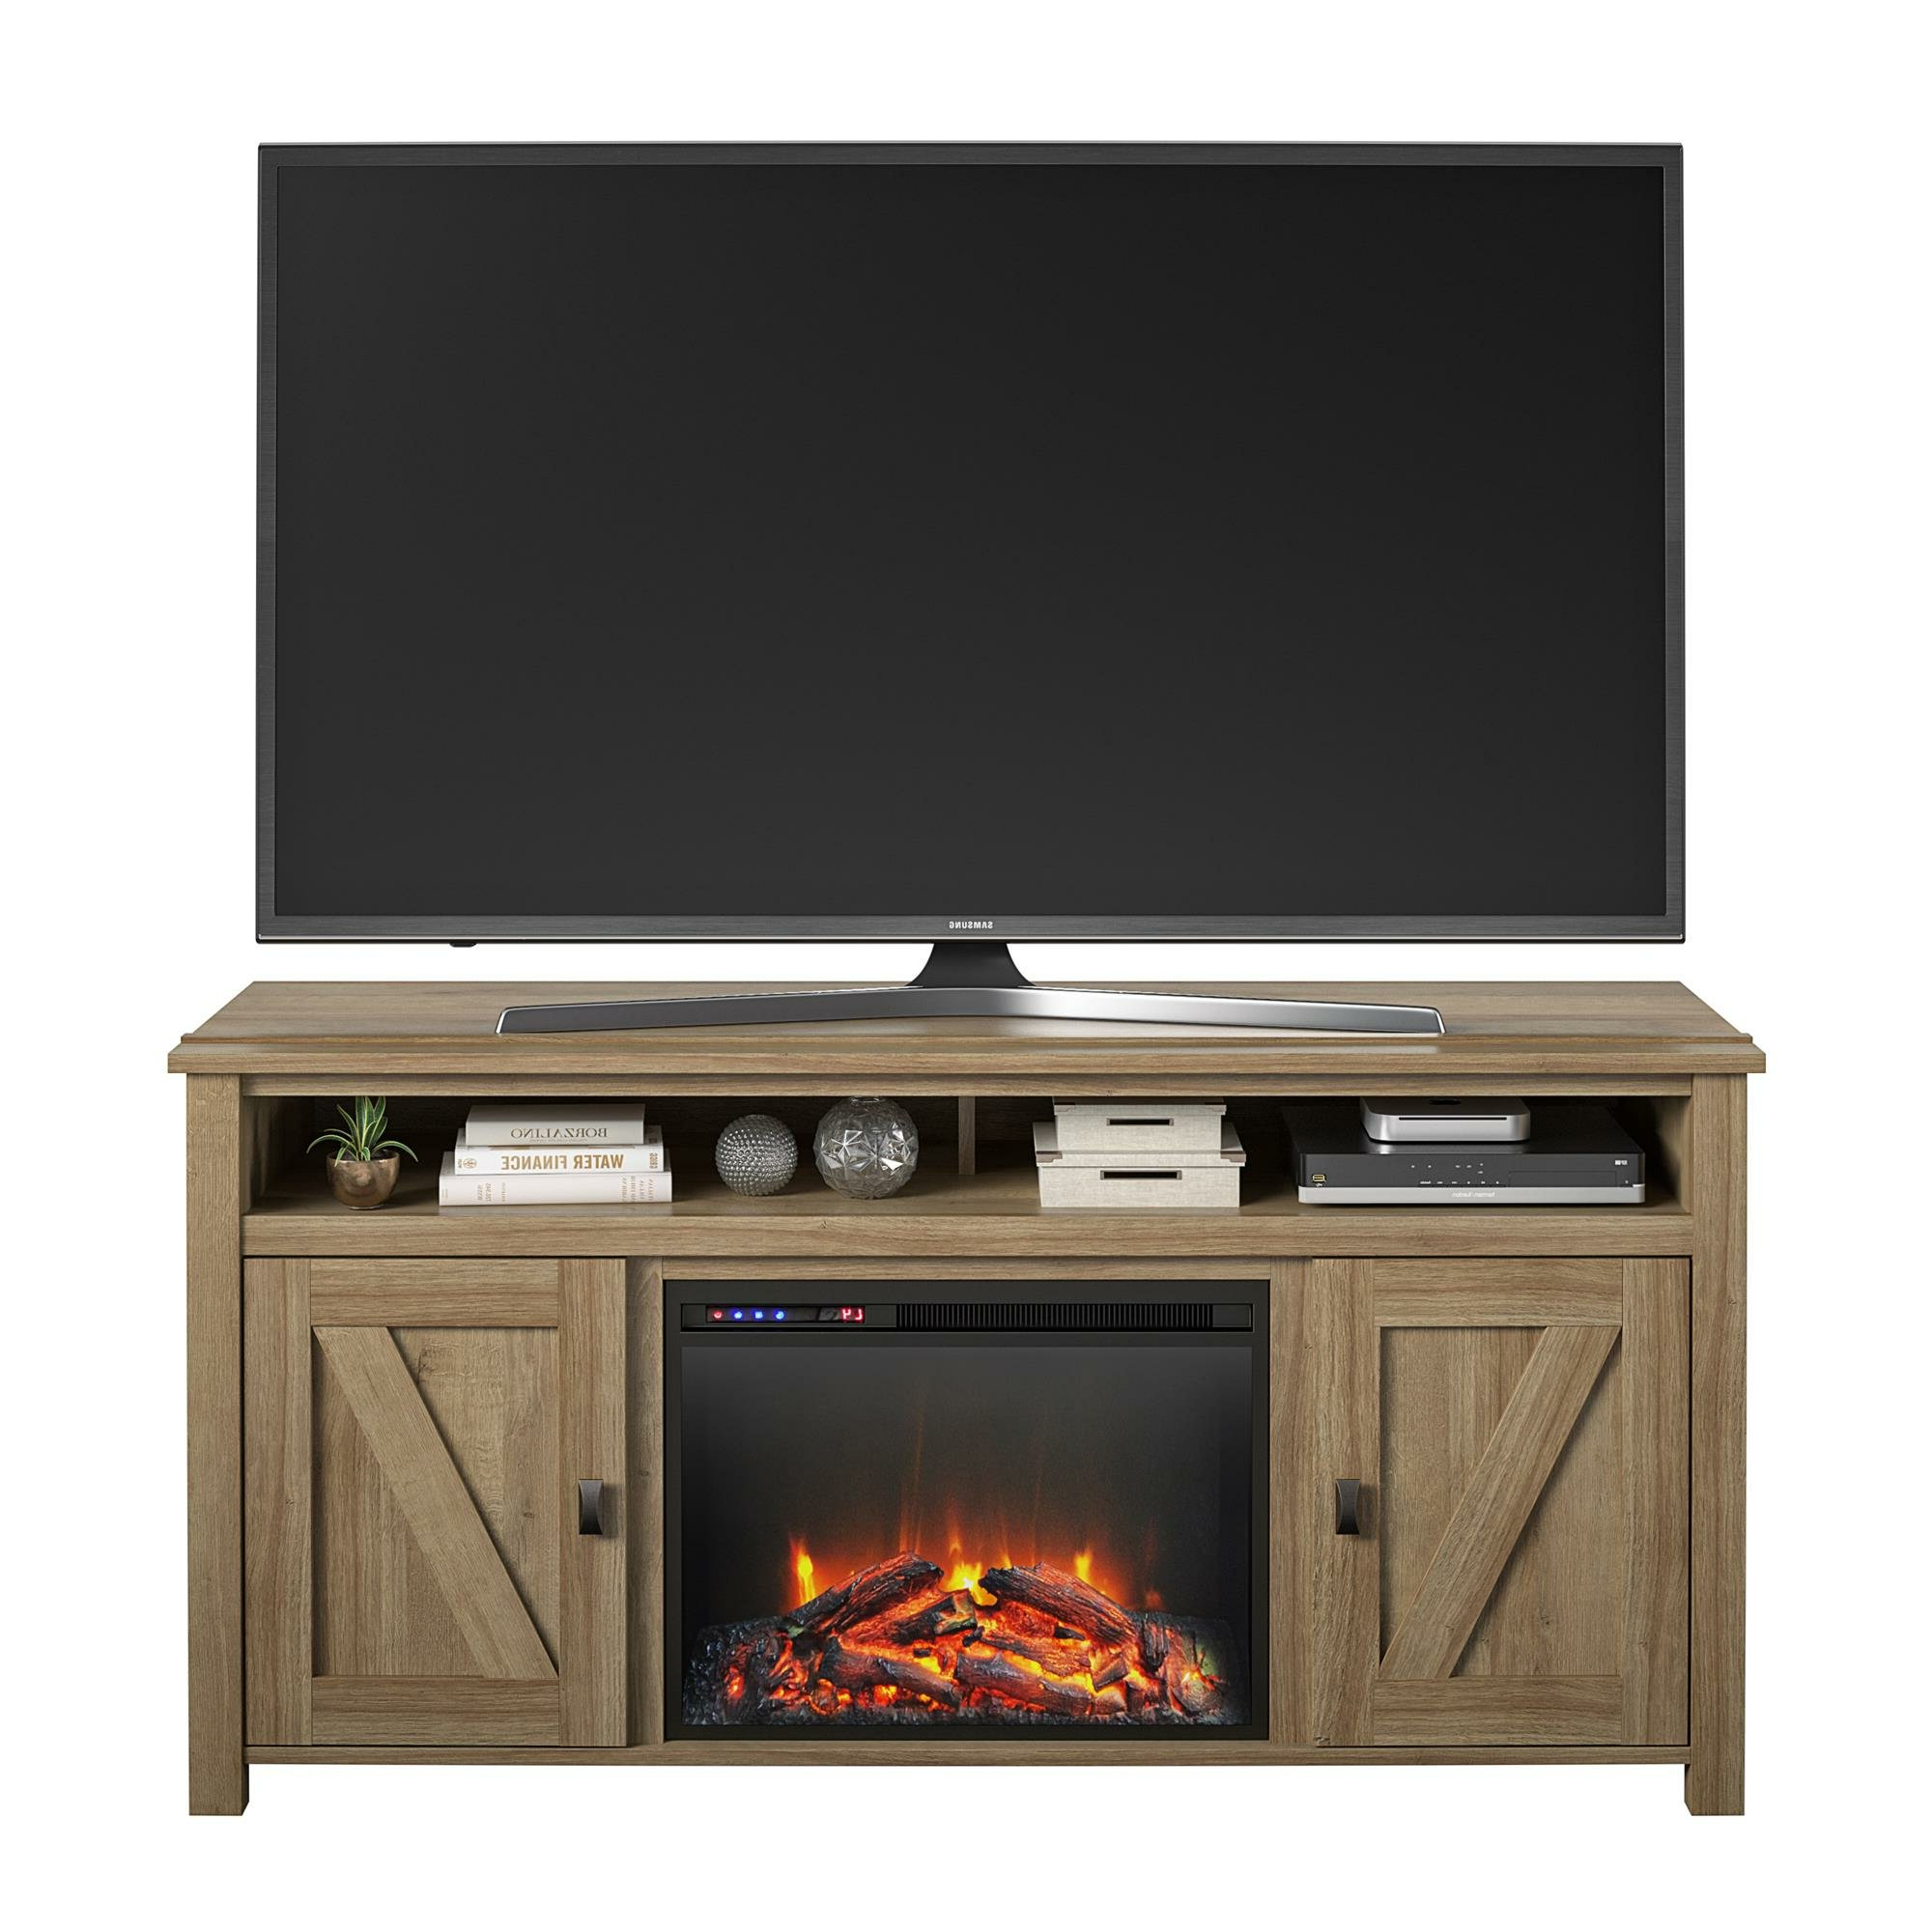 """Kohn Tv Stand For Tvs Up To 65"""" With Electric Fireplace Included Pertaining To Eutropios Tv Stand With Electric Fireplace Included (View 15 of 20)"""